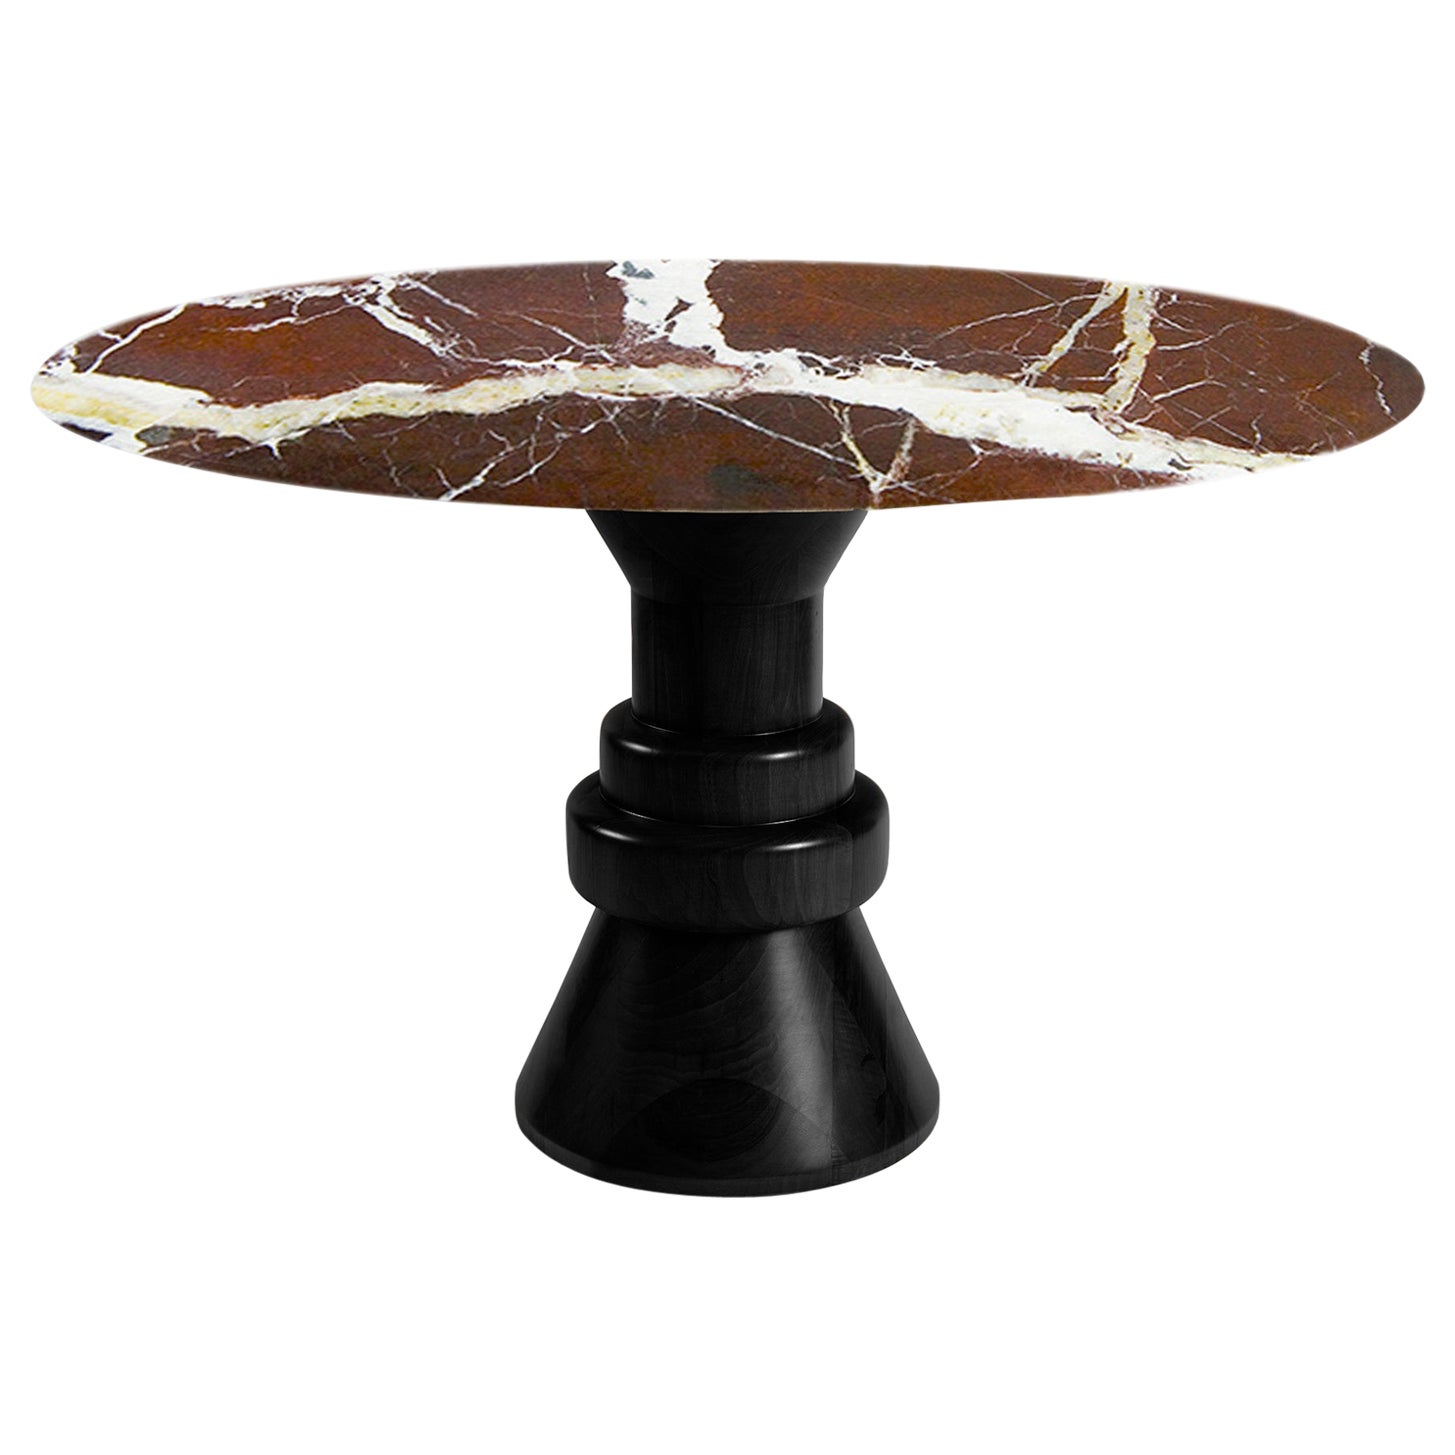 21st Century Red Marble Round Dining Table with Sculptural Black Wooden Base